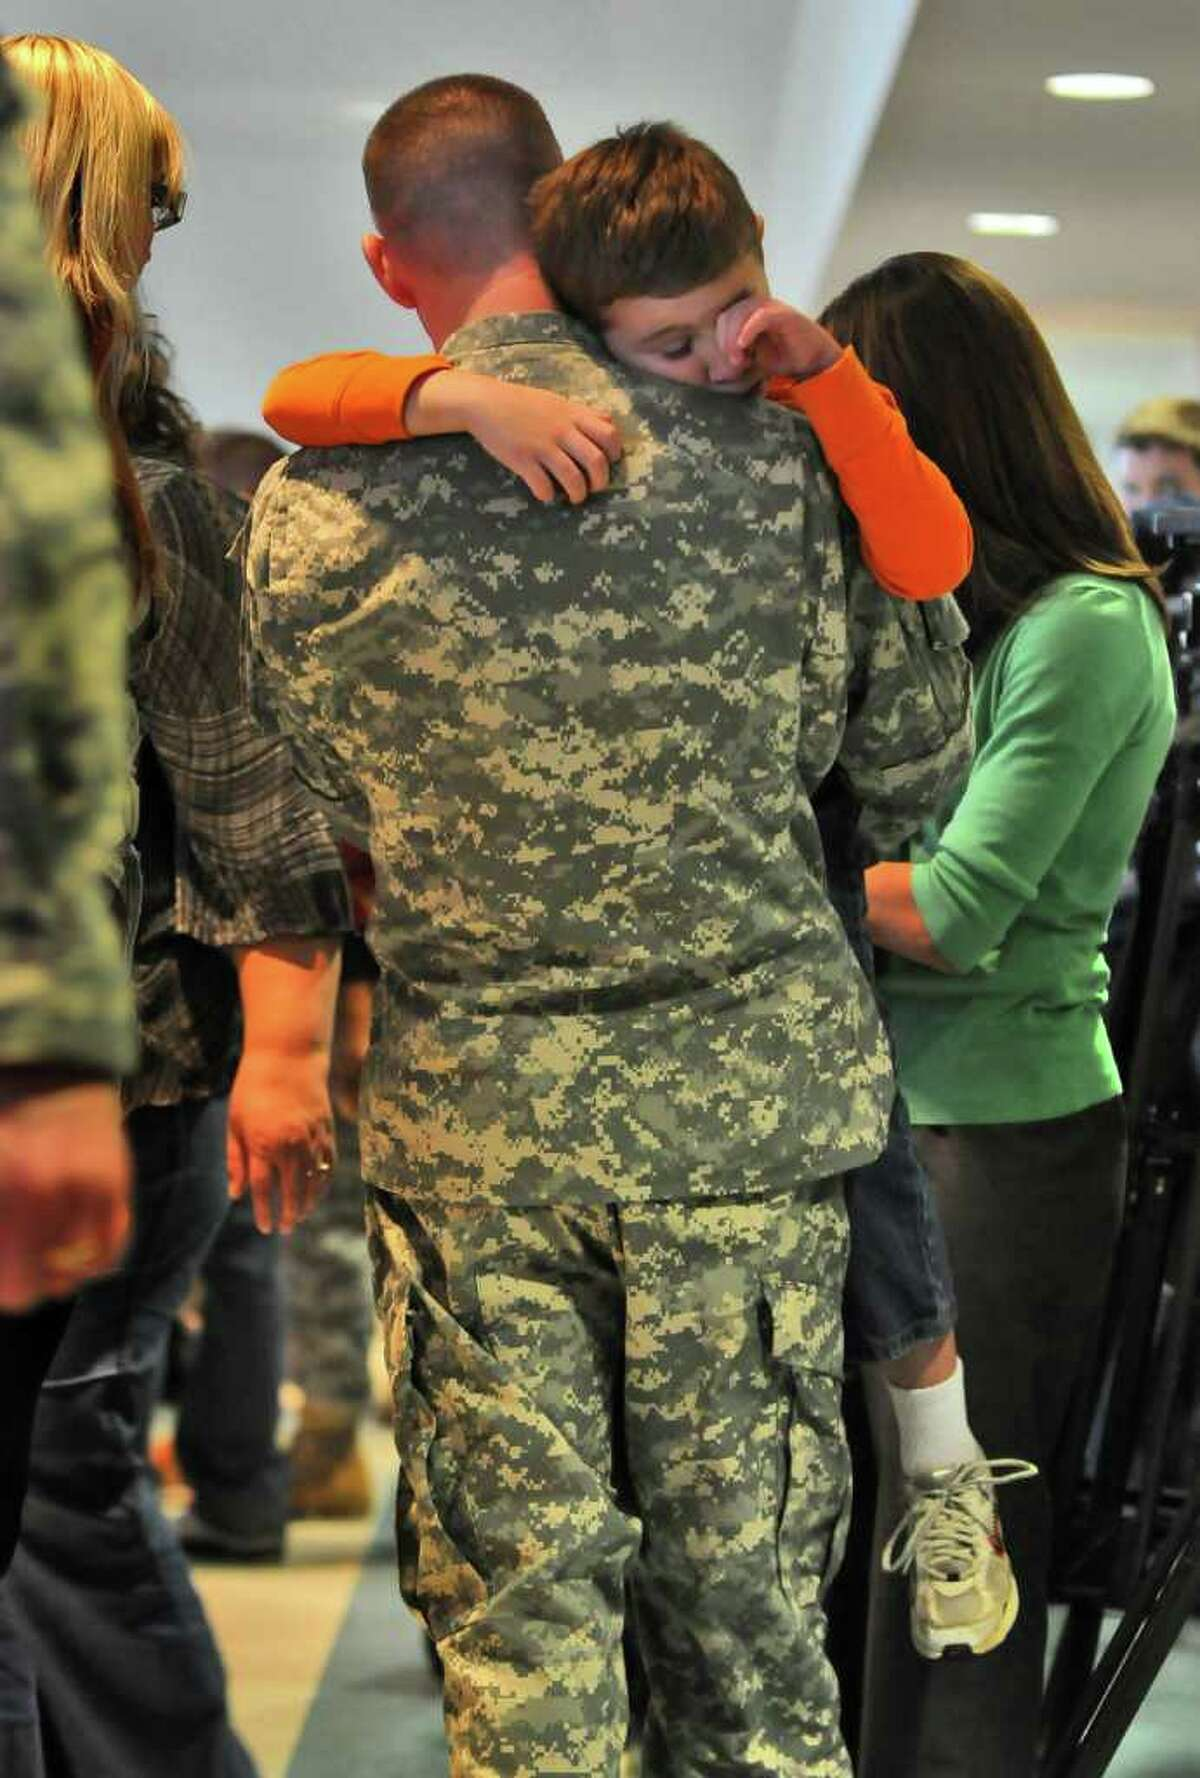 Staff Sgt. Shawn Nethaway of Latham tries to comfort his son Logan, 7, following a mobilization farewell ceremony for the Headquarters, 501st Ordnance Battalion at the Stratton Air National Guard Base in Glenville on Monday, October 25, 2010. The unit is heading to Iraq after training. This is Staff Sgt. Nethaway's second deployment.( Philip Kamrass / Times Union )